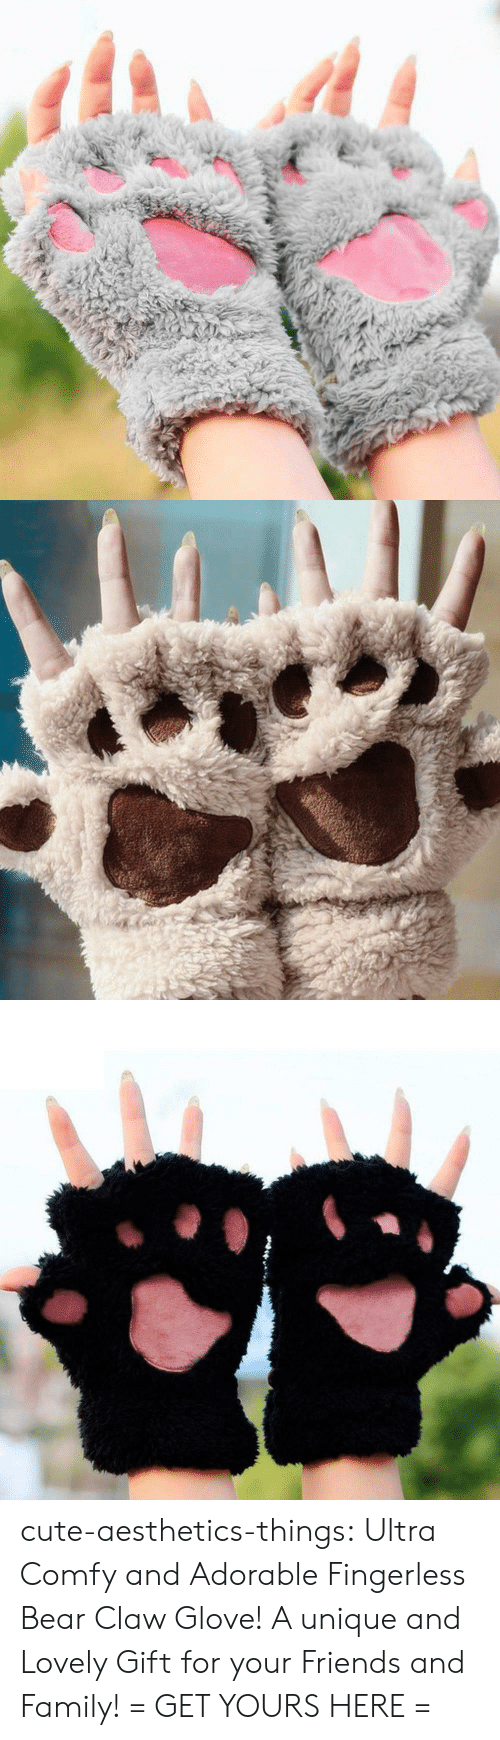 Glove: cute-aesthetics-things: Ultra Comfy and Adorable Fingerless Bear Claw Glove! A unique and Lovely Gift for your Friends and Family! = GET YOURS HERE =